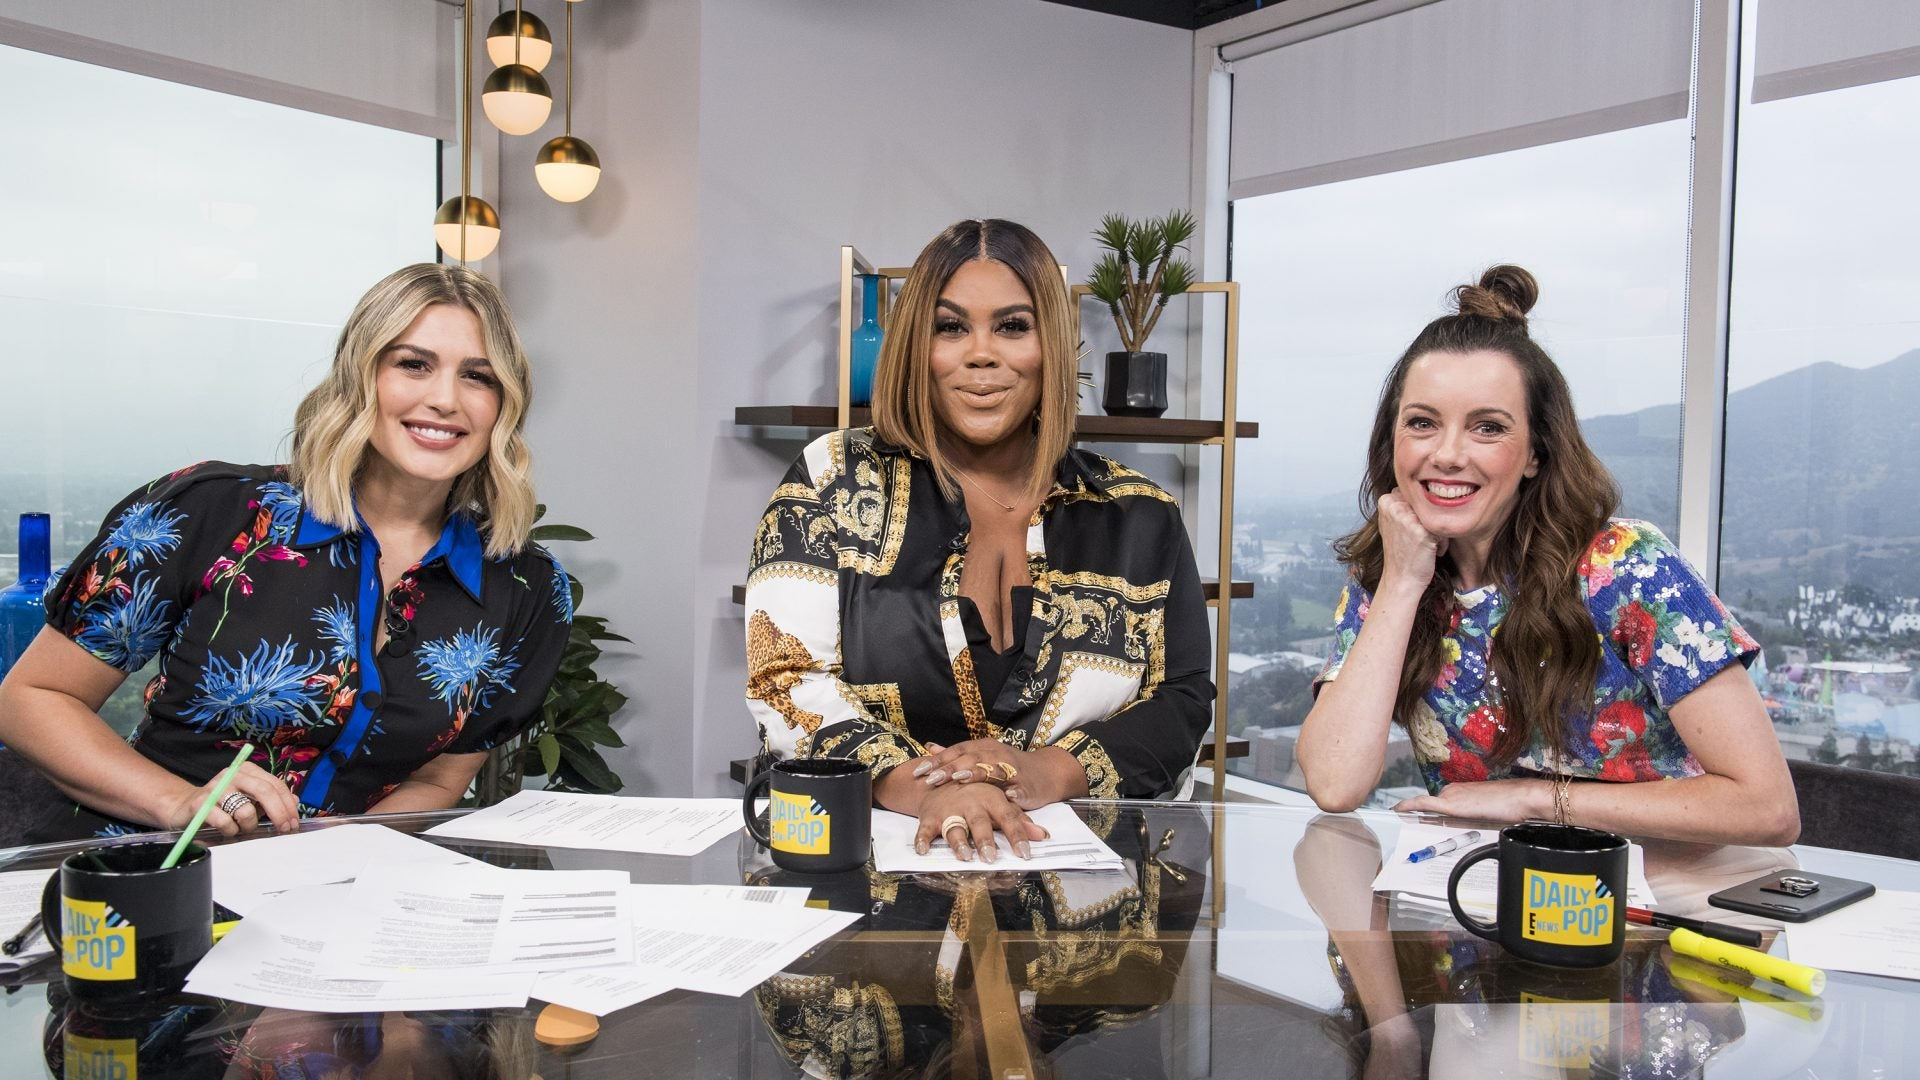 E! News Canceled After 29 Years Due To COVID-19